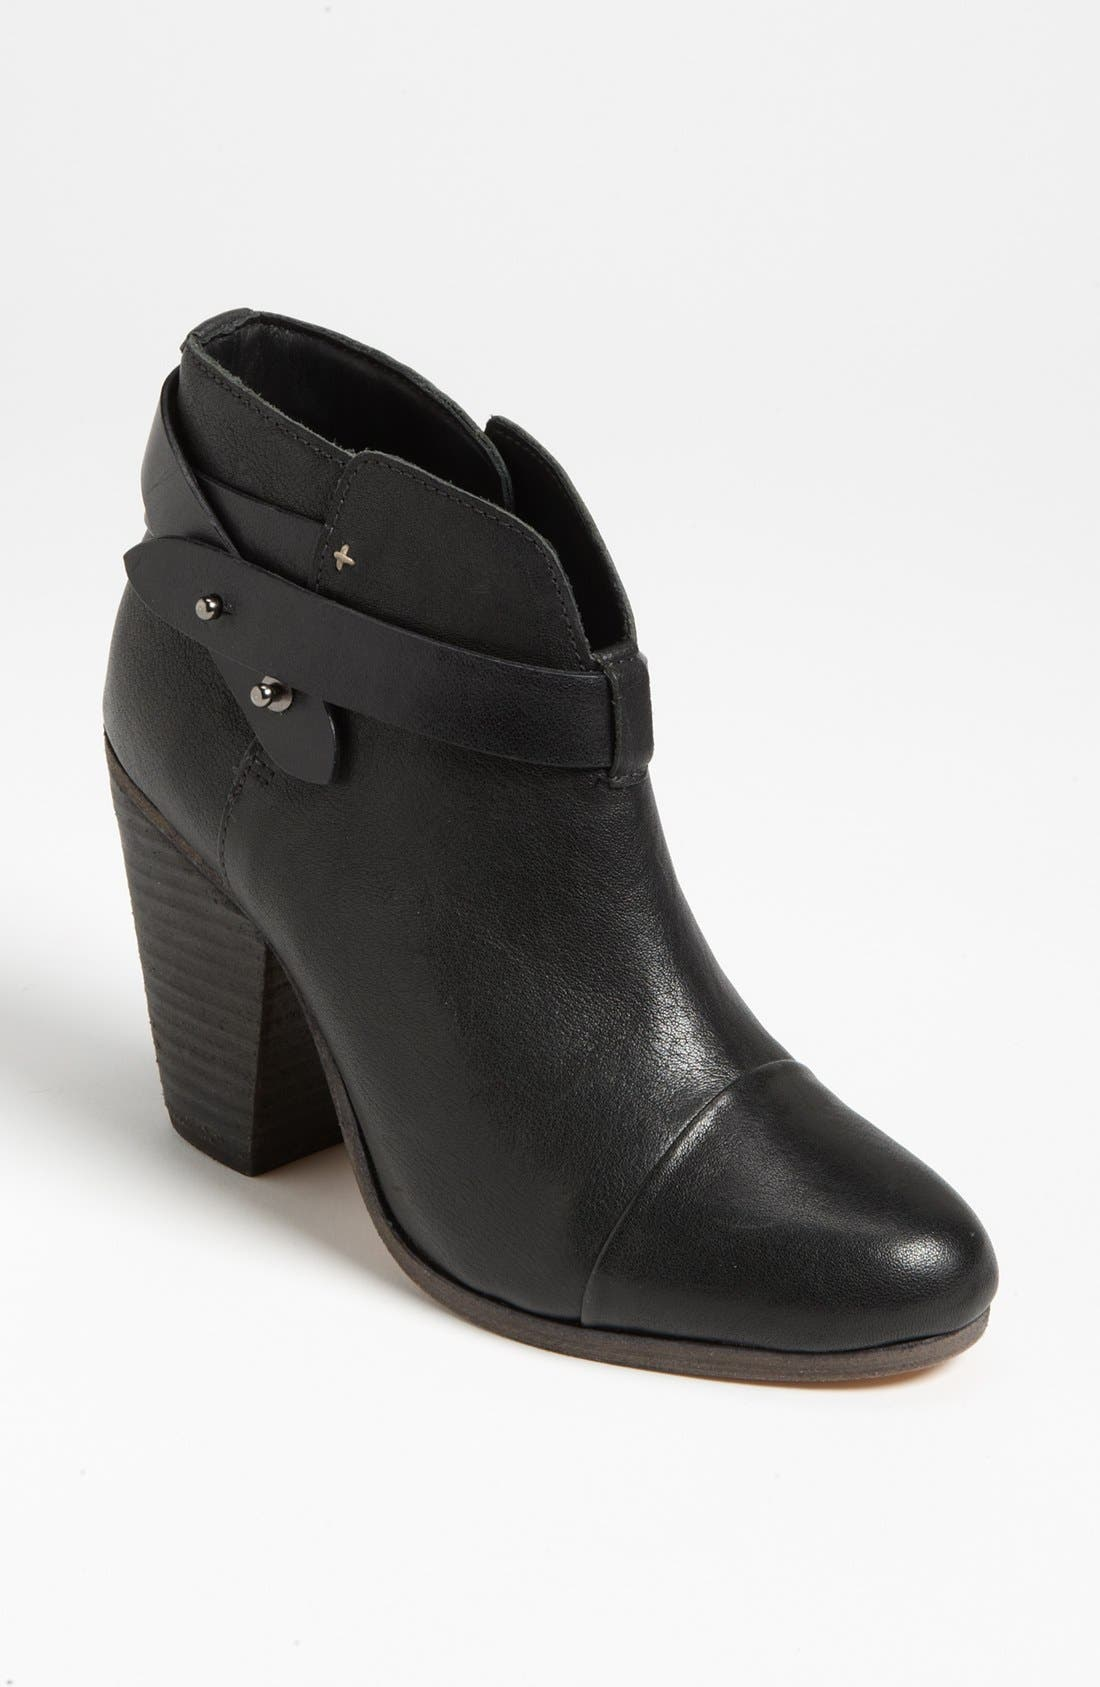 RAG & BONE, 'Harrow' Leather Boot, Main thumbnail 1, color, BLACK